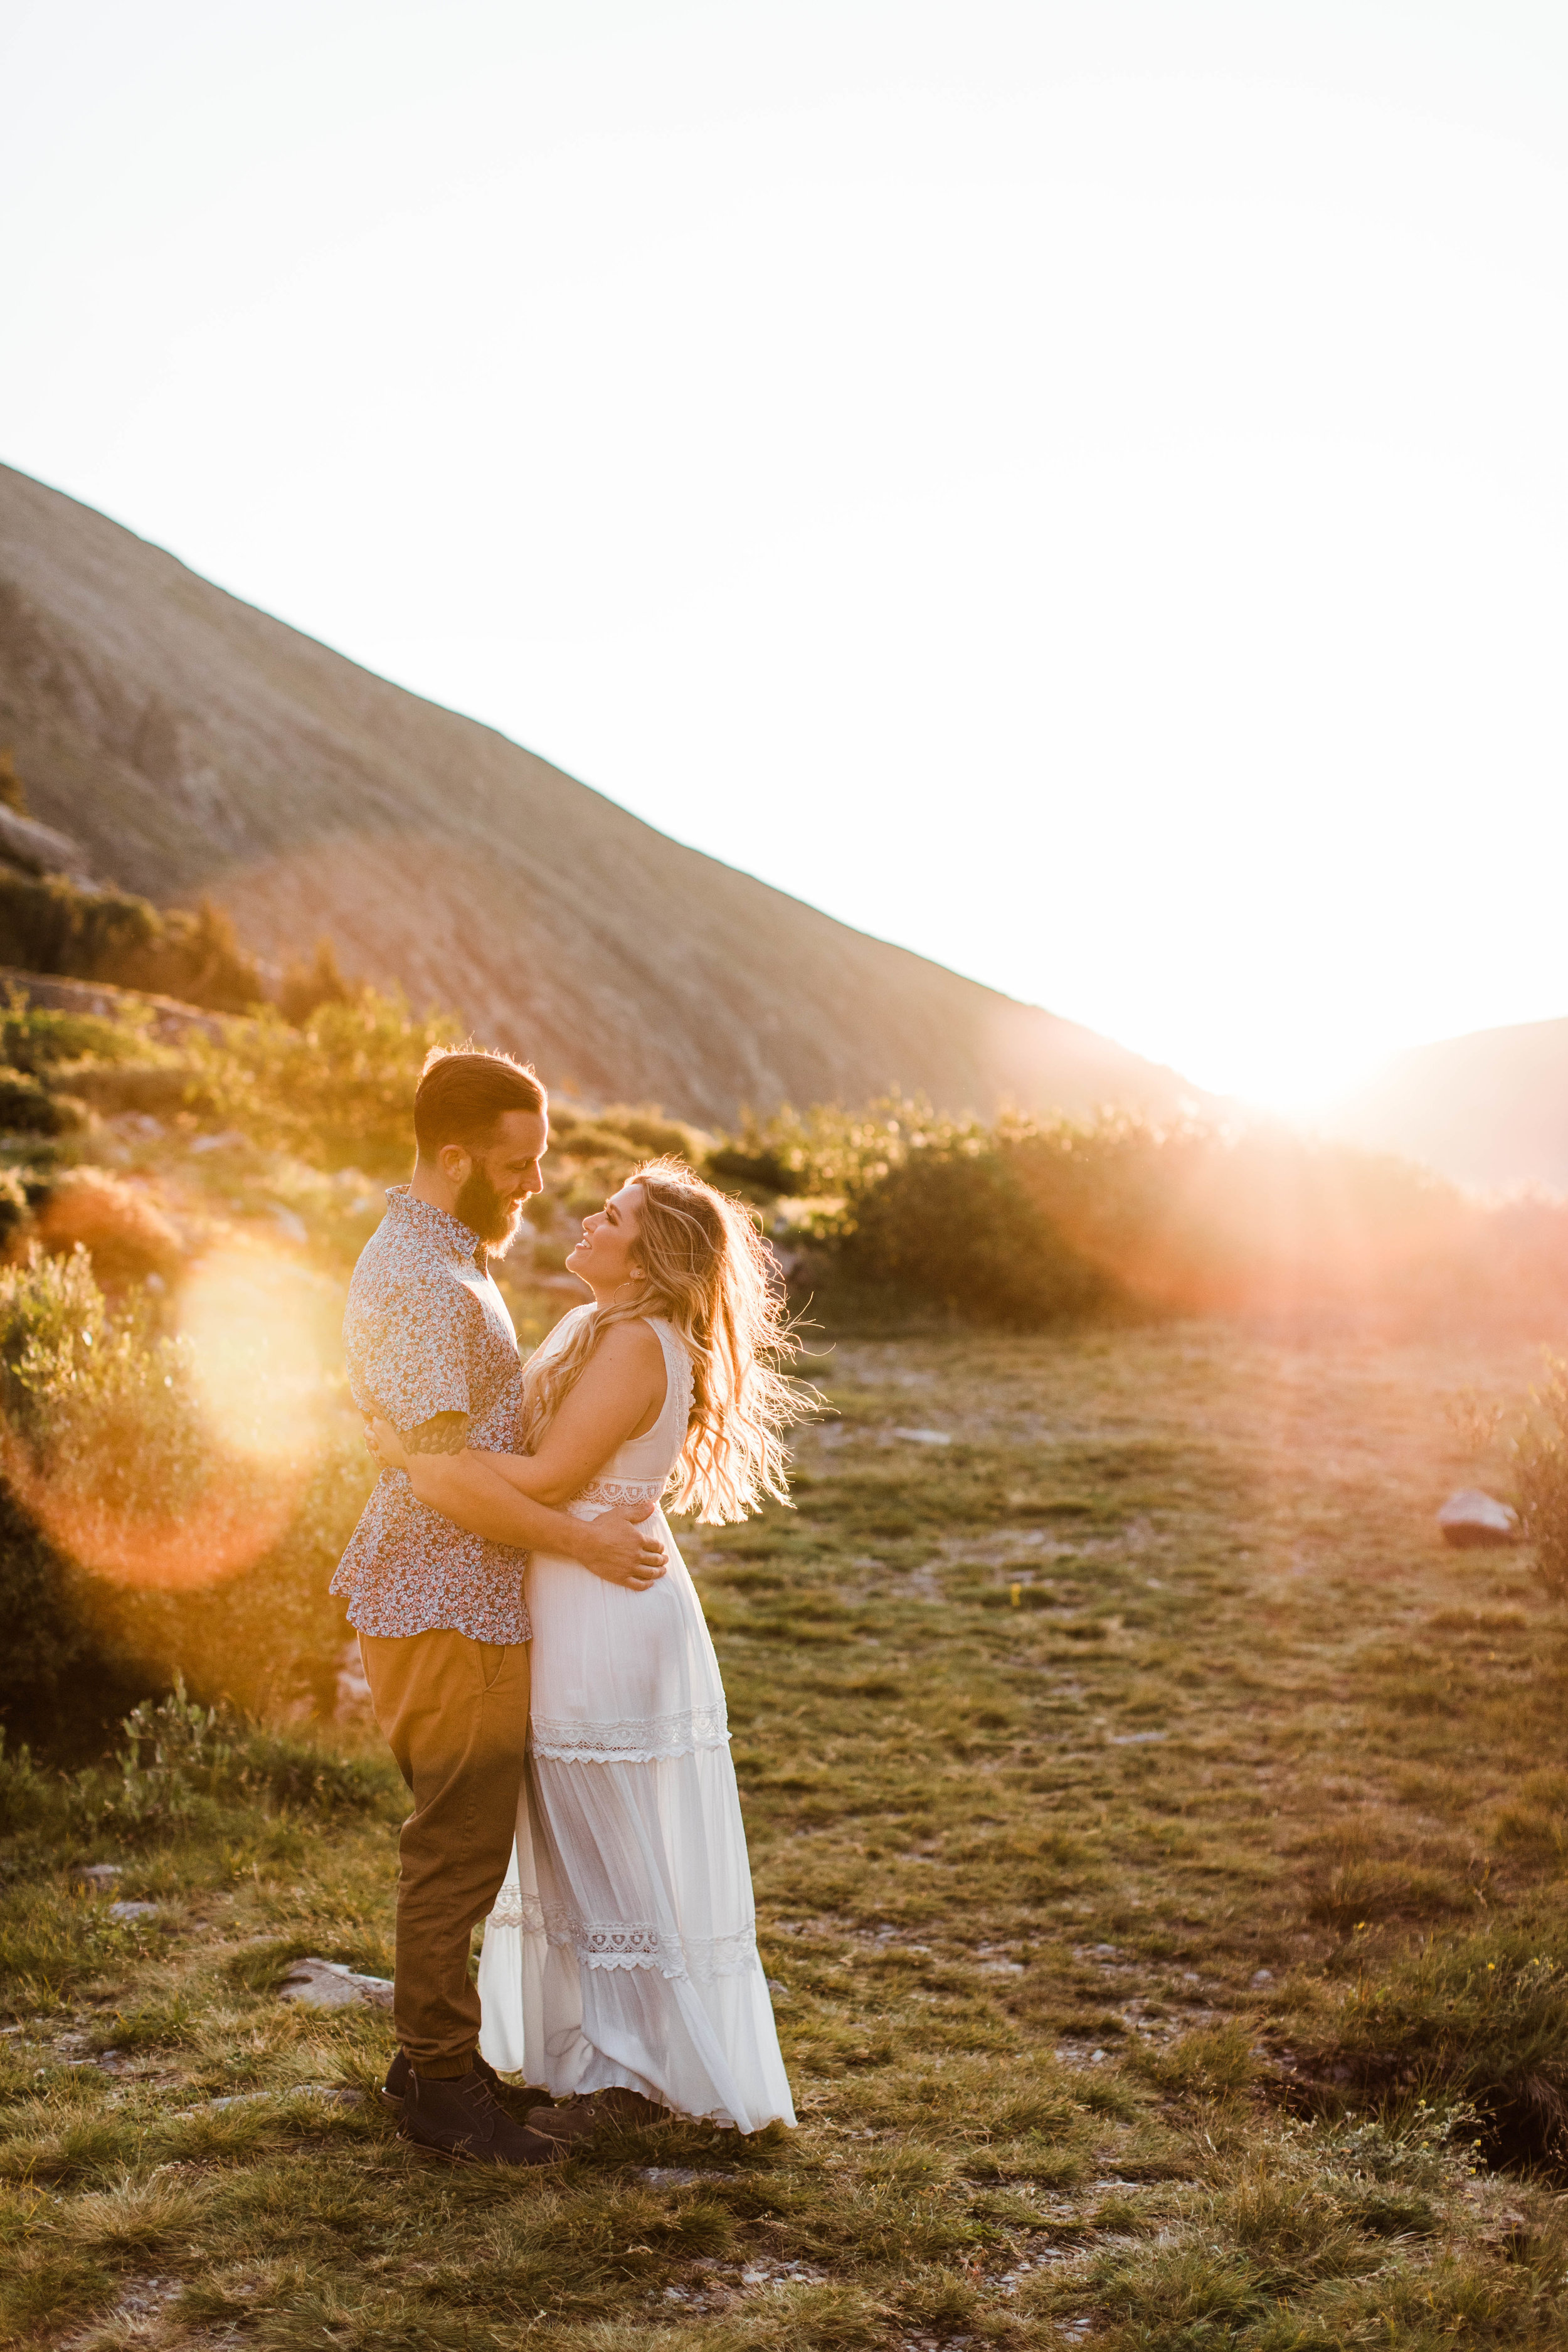 sunrise Breckenridge elopement style photos during an engaged couple's mountain adventure engagement photos | Breckenridge adventure wedding photographers